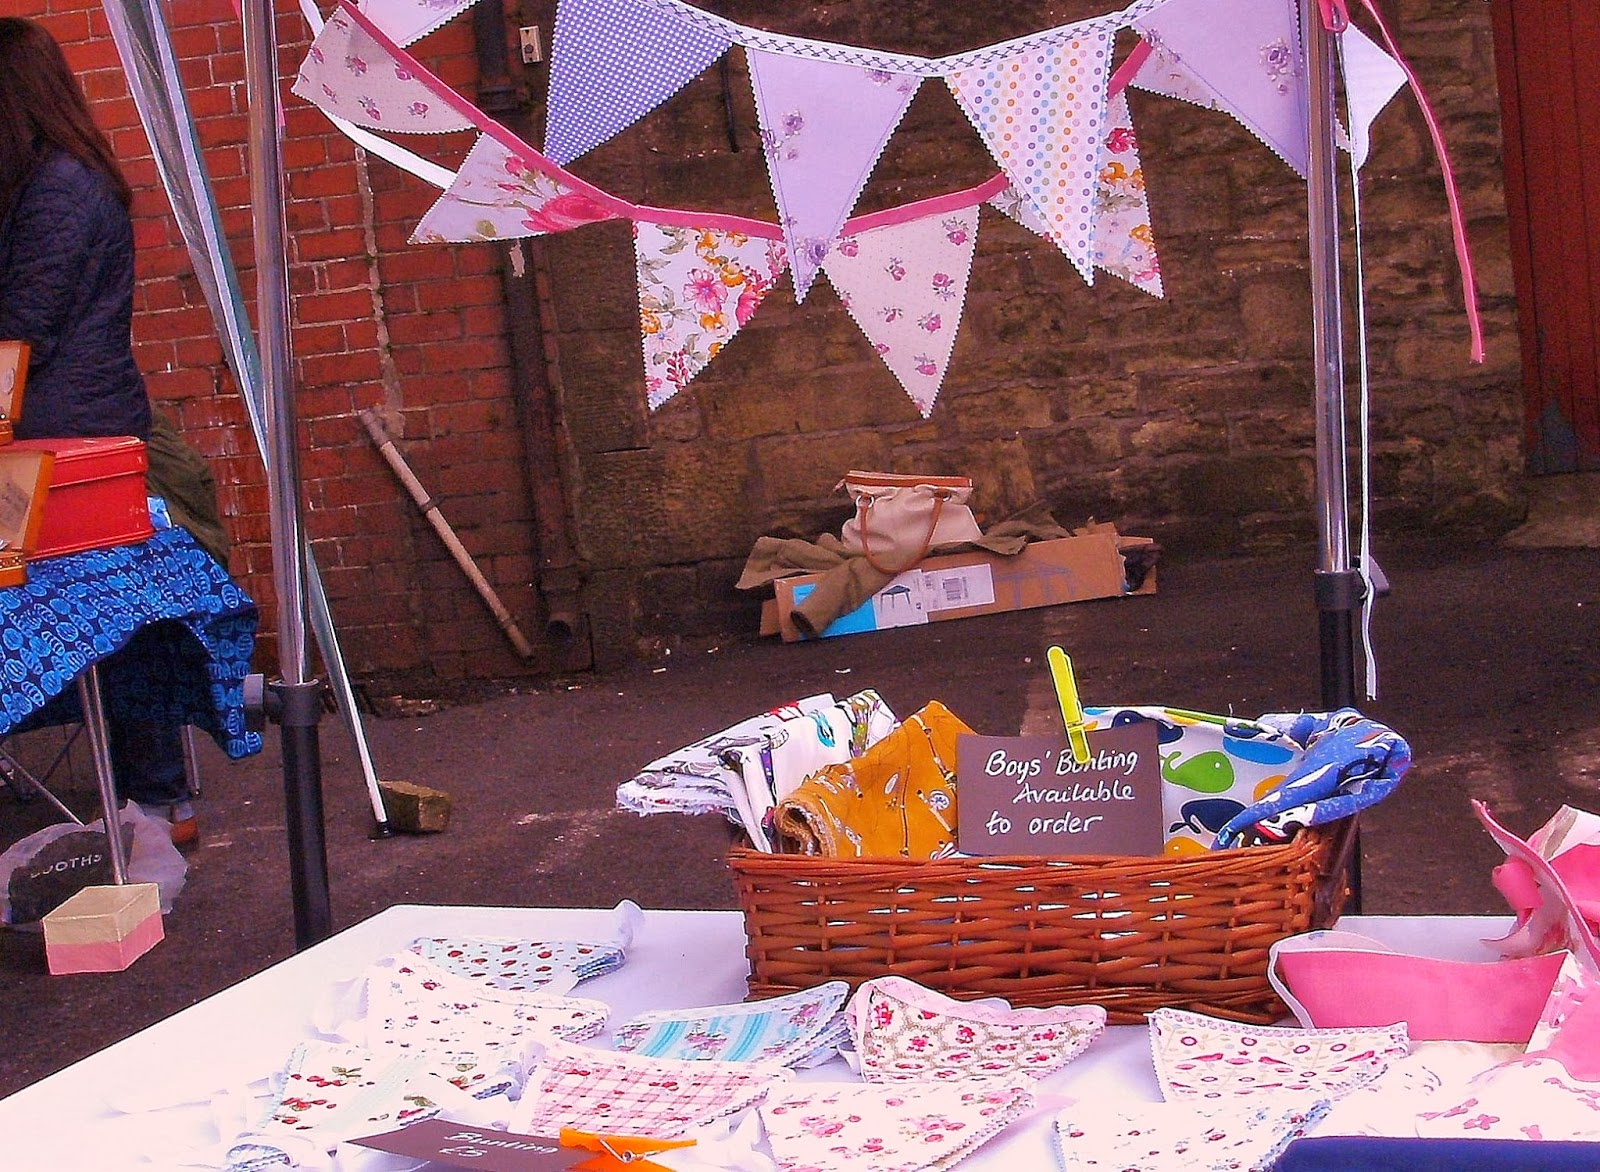 Stall at village market - the wind had really got up!